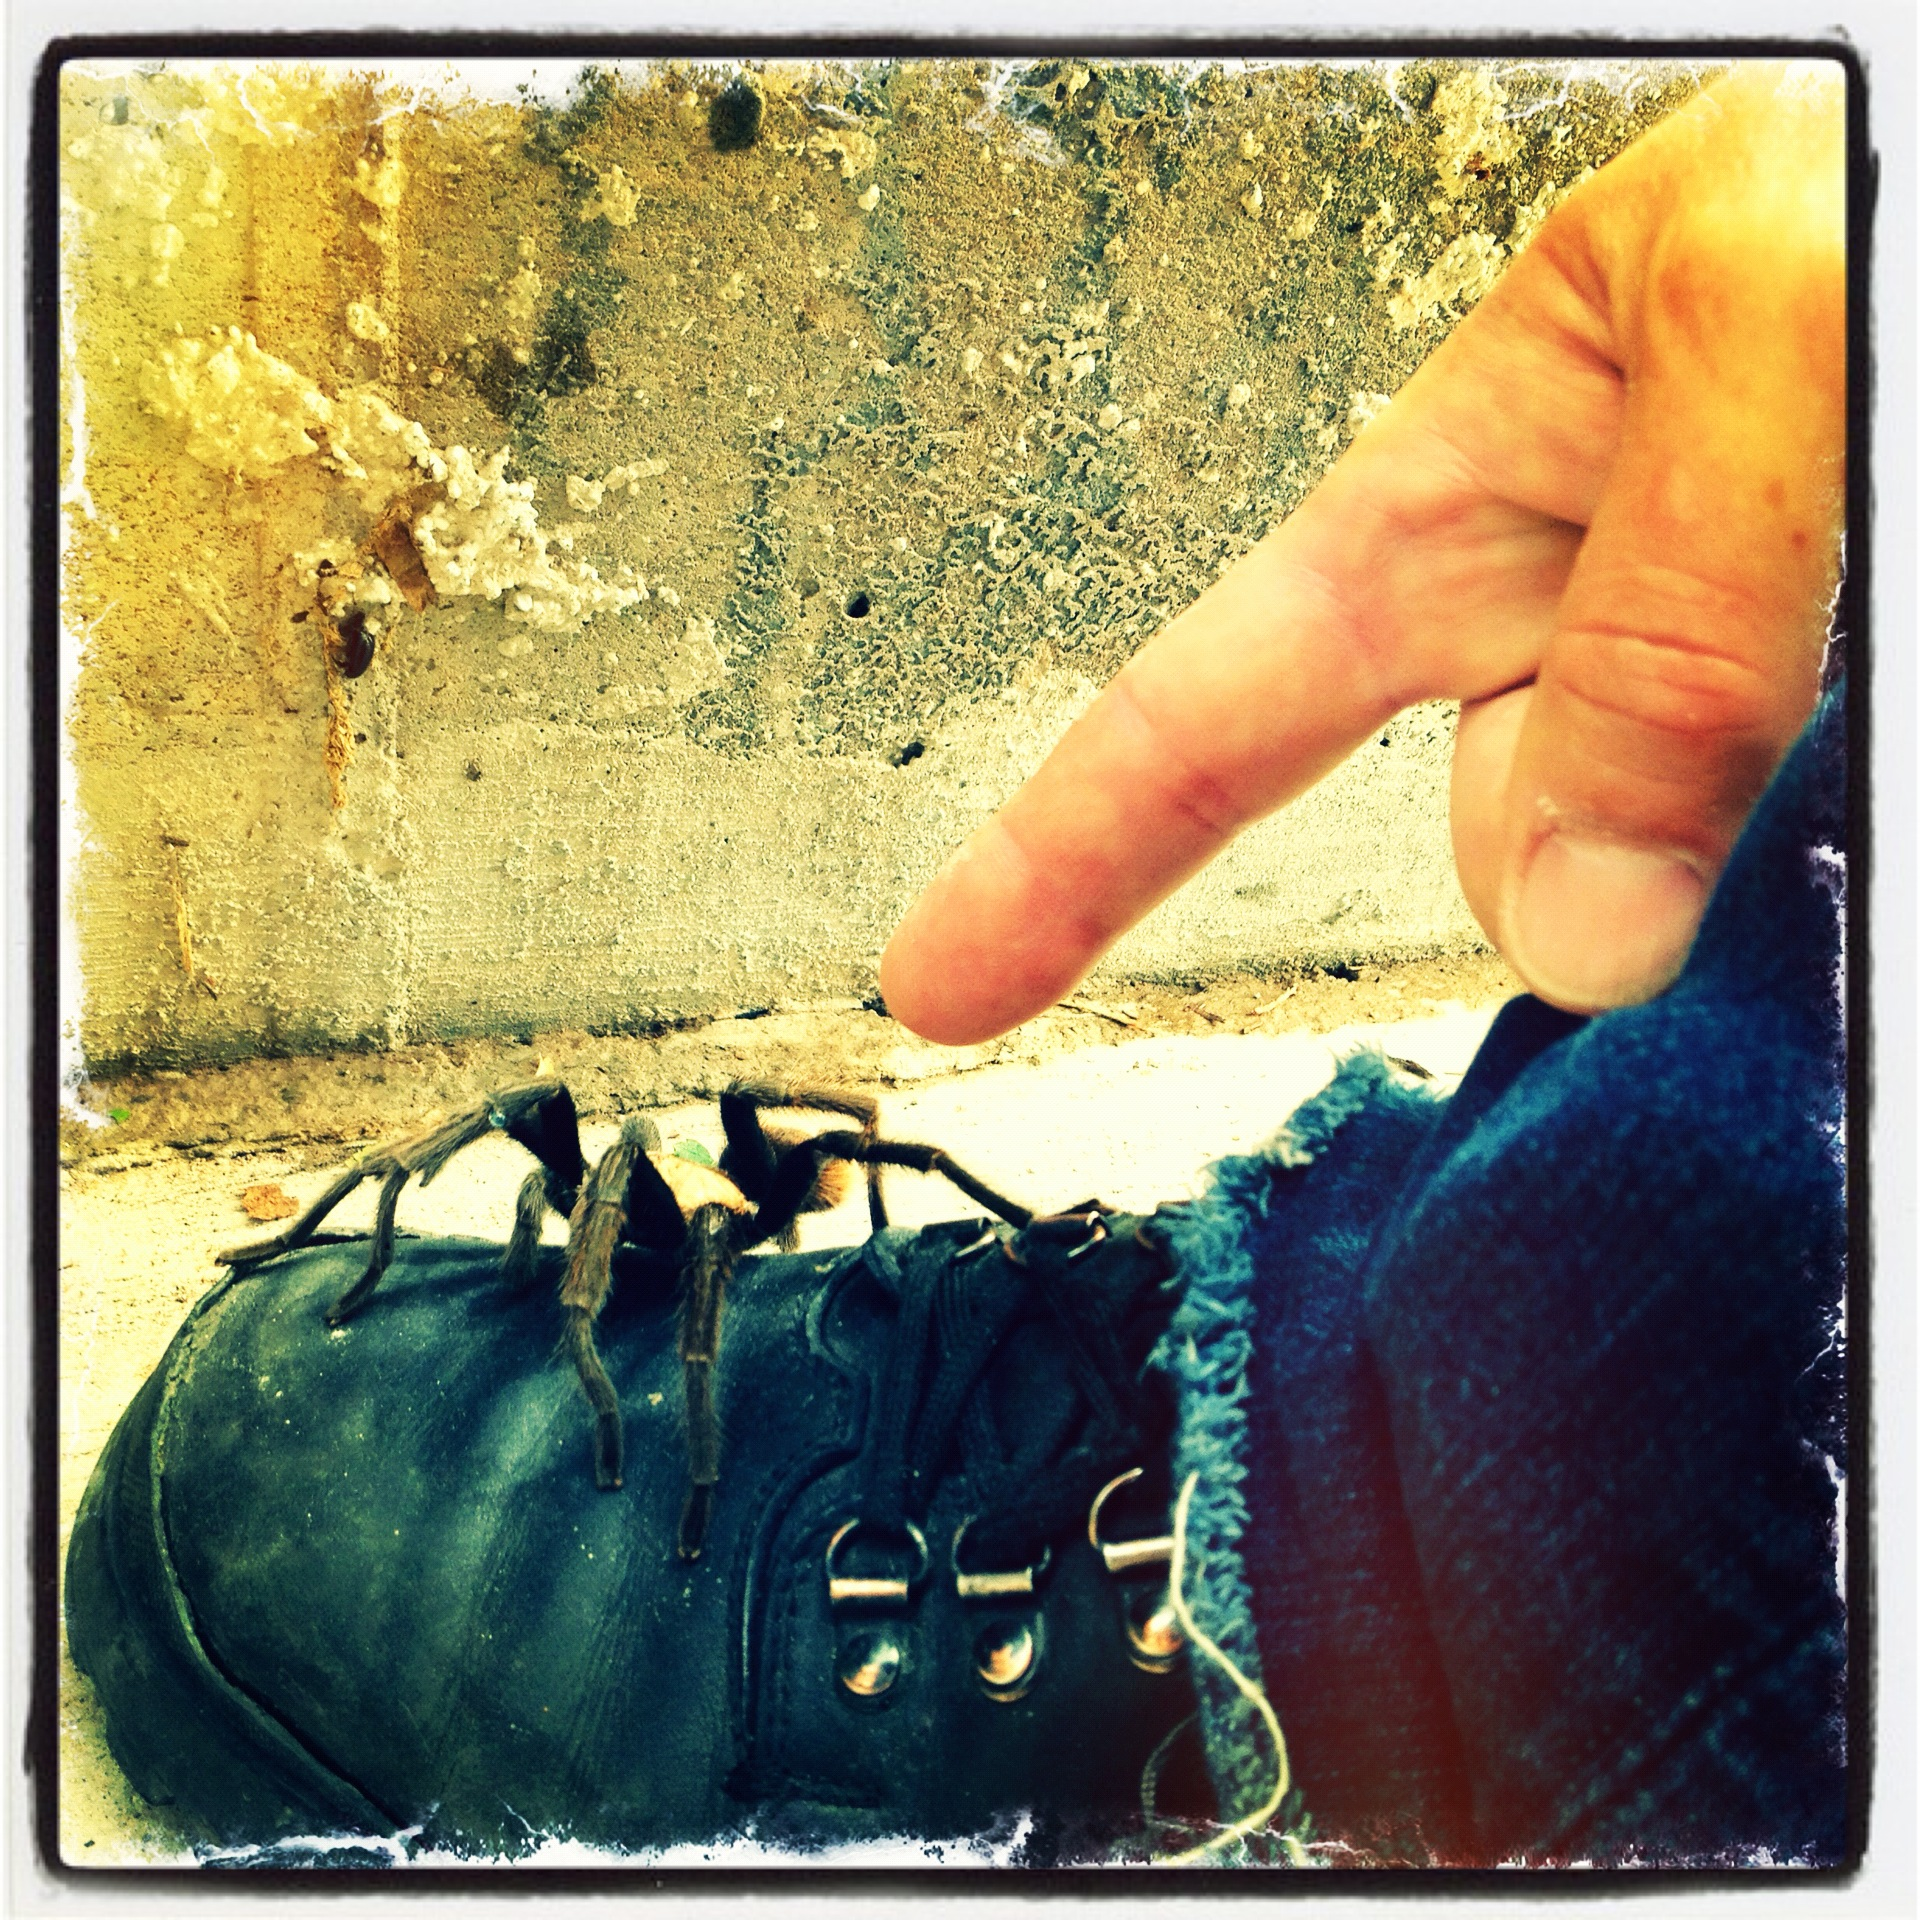 A hand holding a piece of luggage